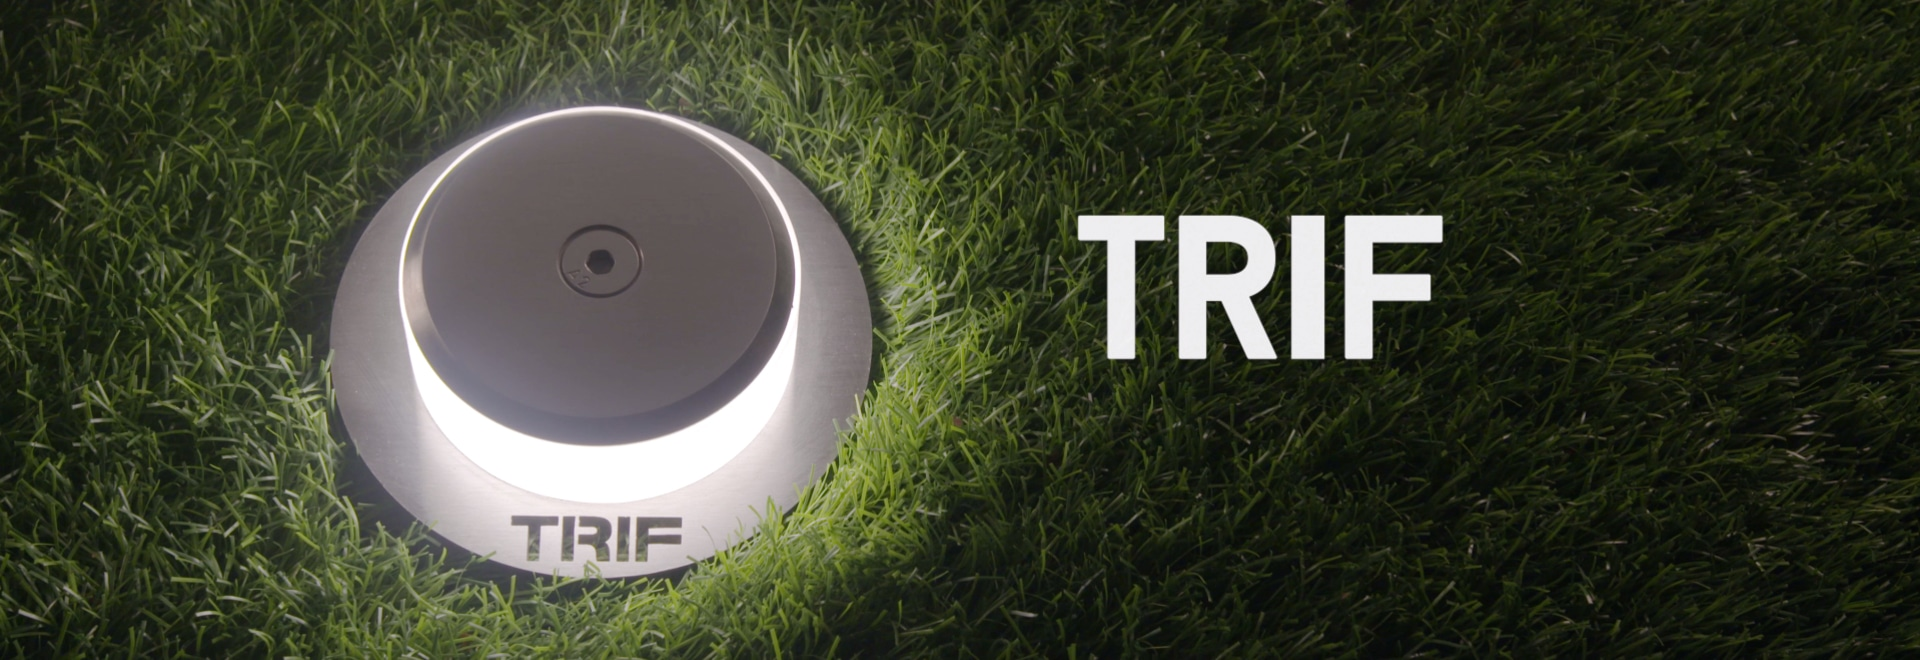 TRIF manufactures unique outdoor LED lights by the IP68/+ice standard